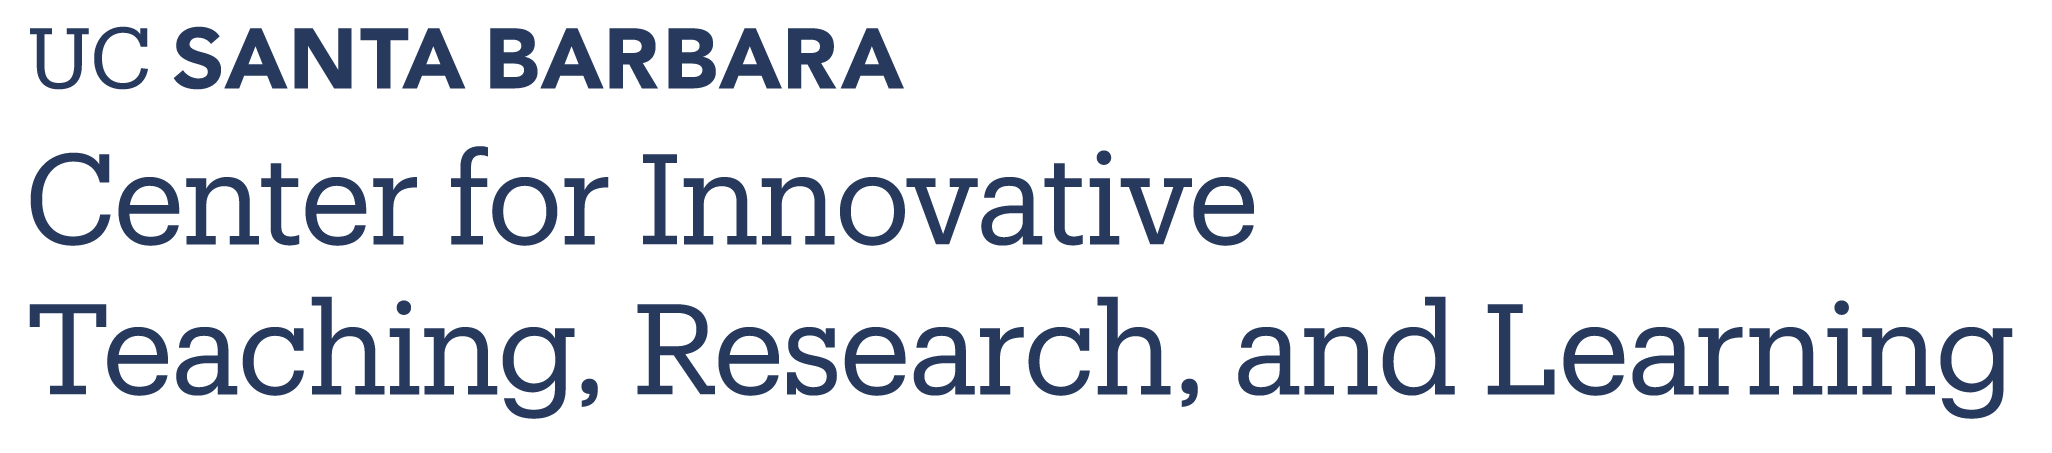 Center for Innovative Teaching Research and Learning - UC Santa Barbara